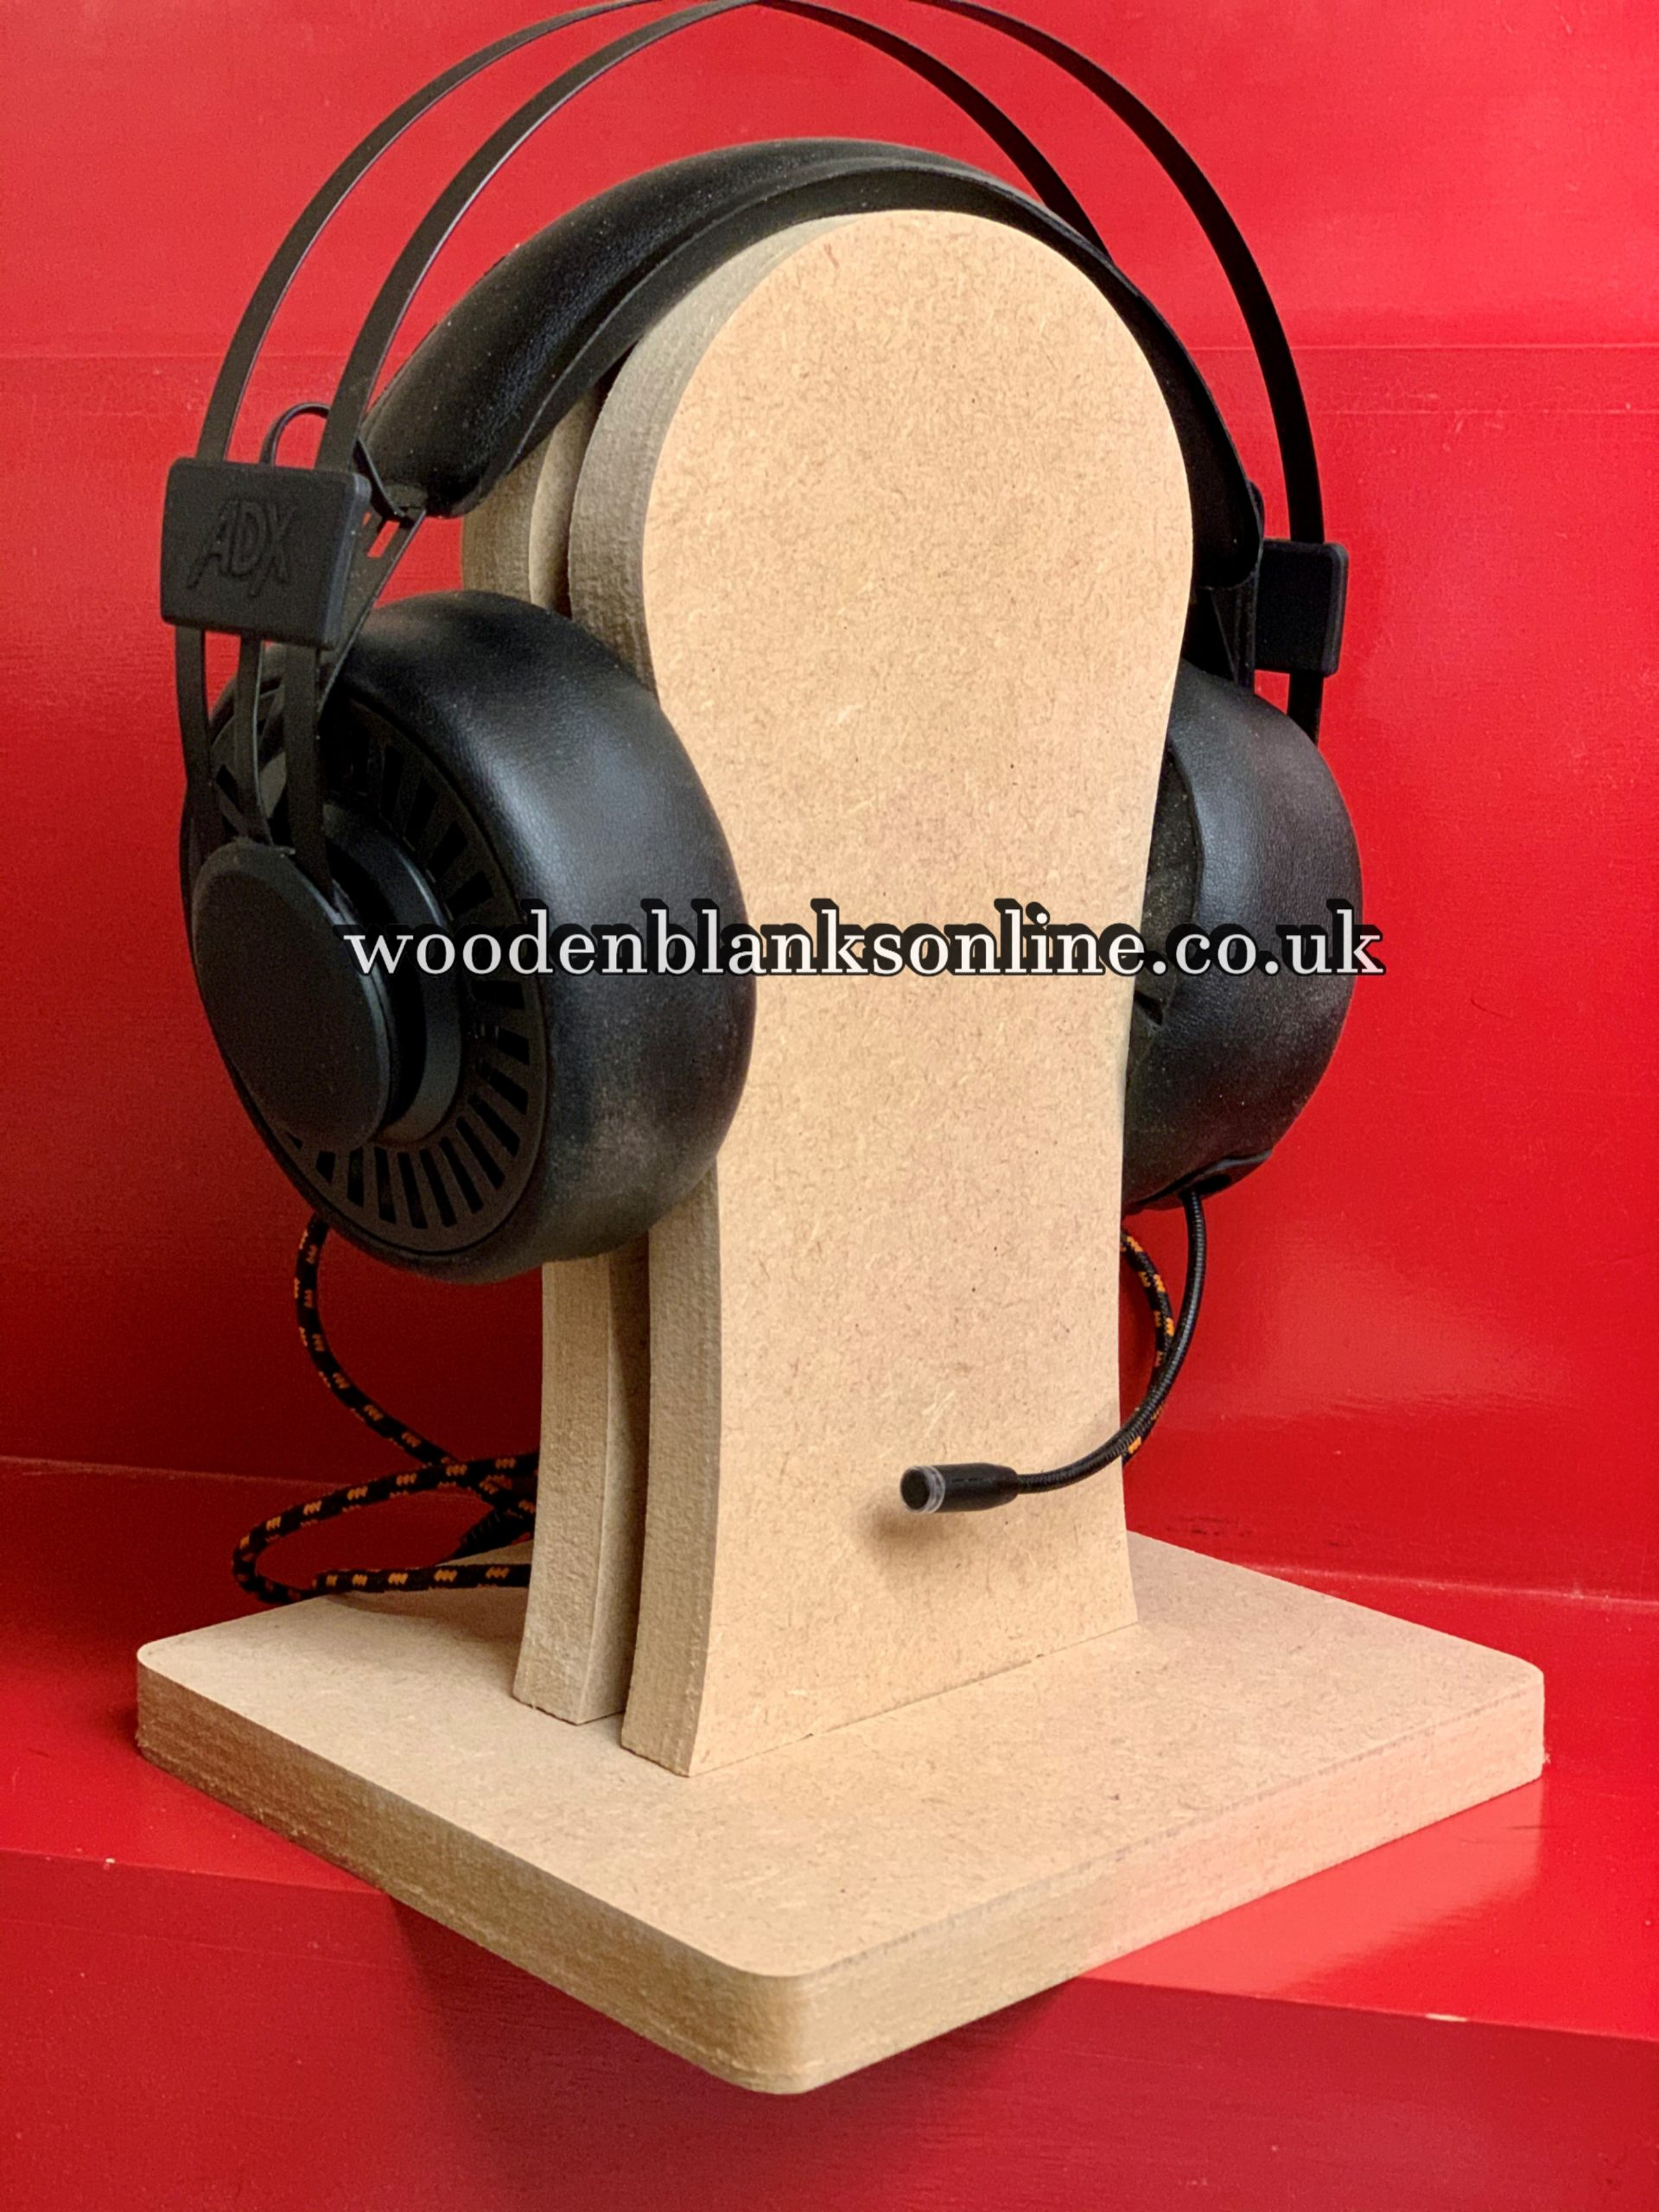 Headset only 2